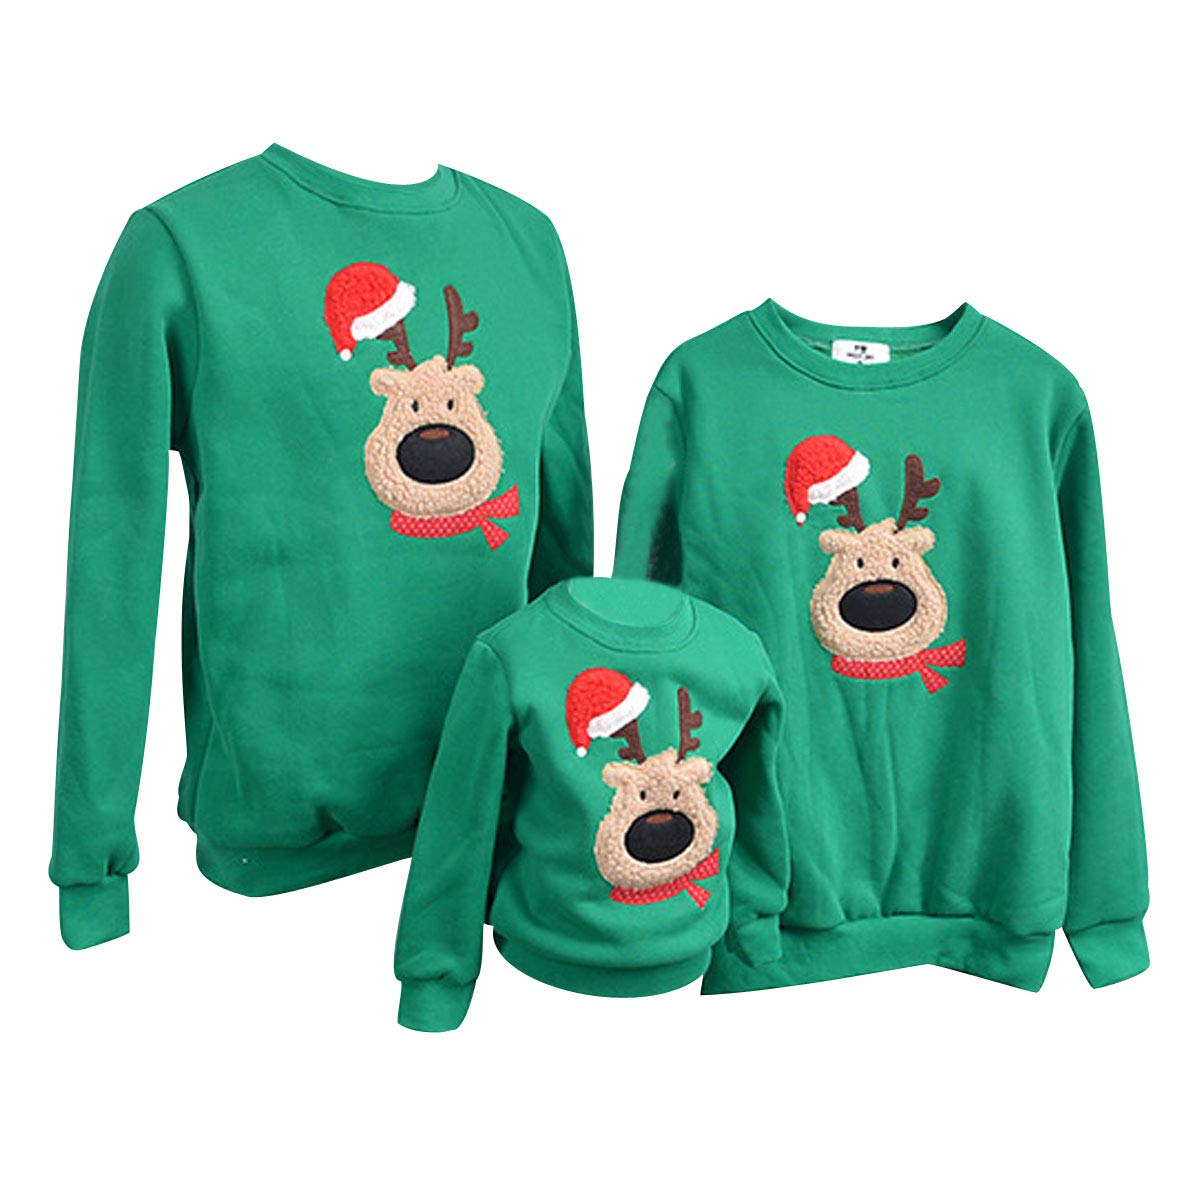 Couples Christmas Sweaters.Family Matching Christmas Jumpers Funny Xmas Jumpers Sweatshirts Novelty Ugly Christmas Sweaters Pullover Reindeer Mens Womens Girls Boys Kids Festive